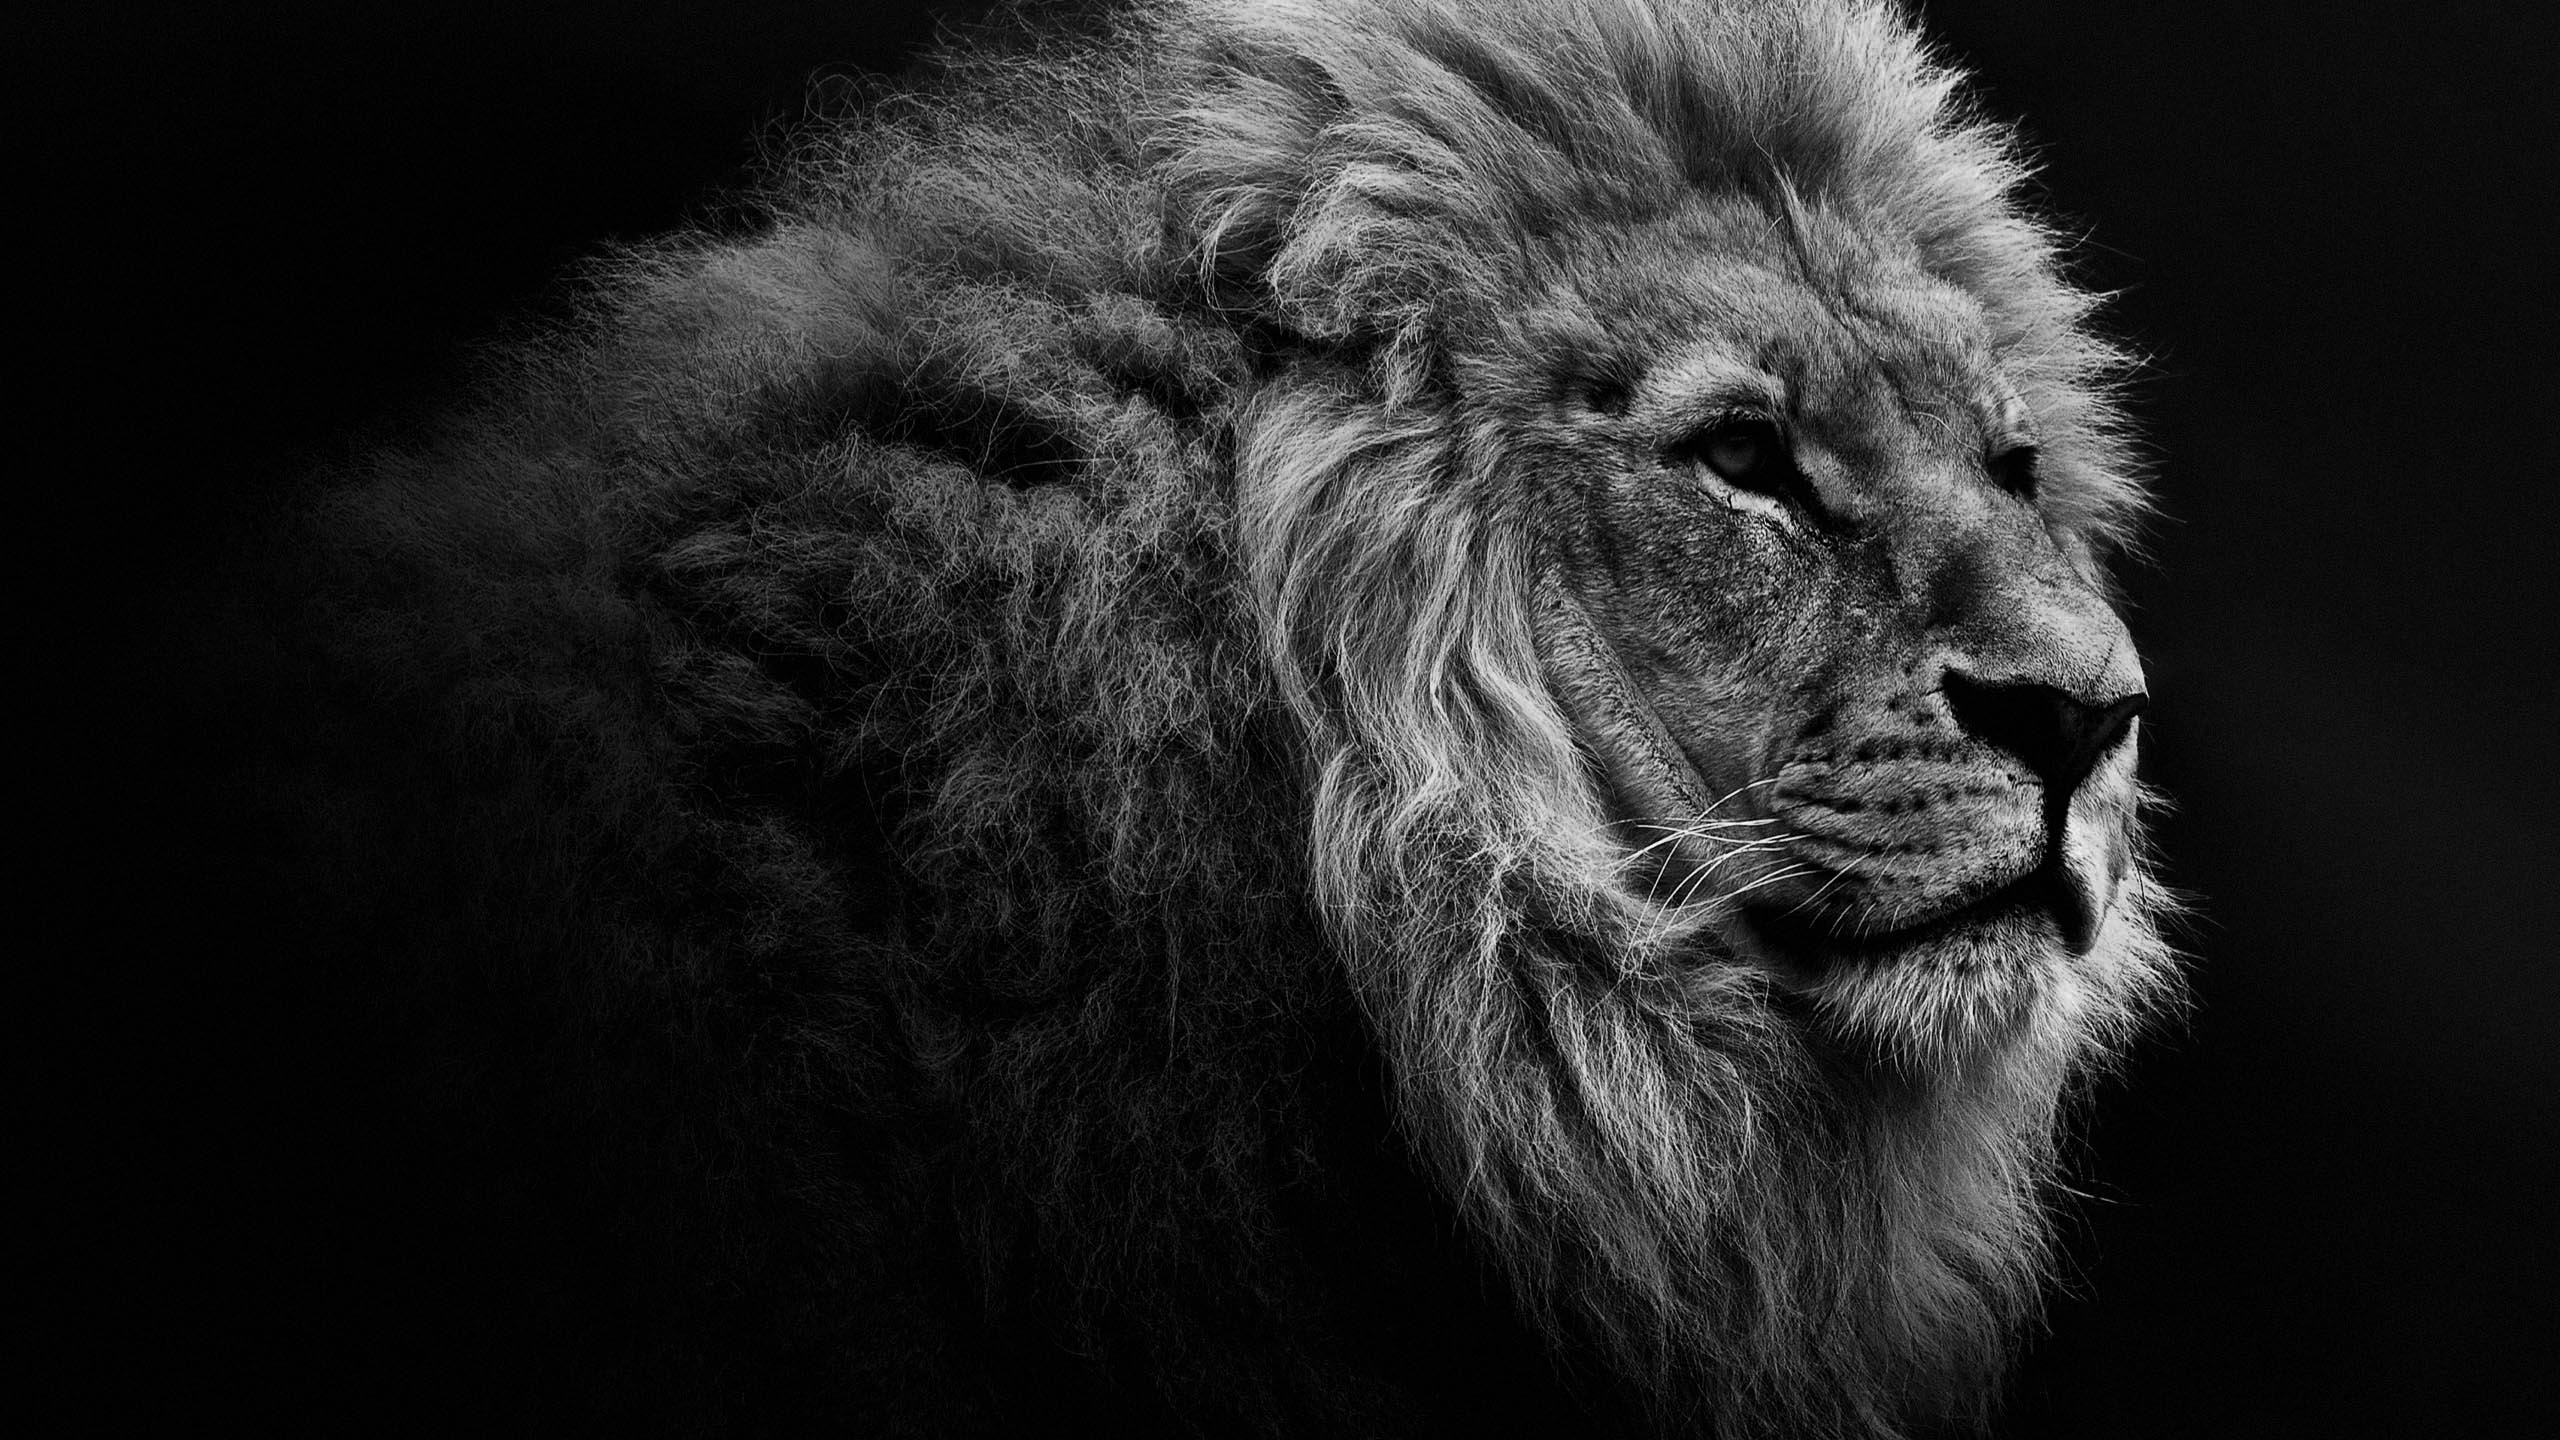 Lion HD Wallpapers  Lion HD Pictures  Free Download  HD 2560x1440